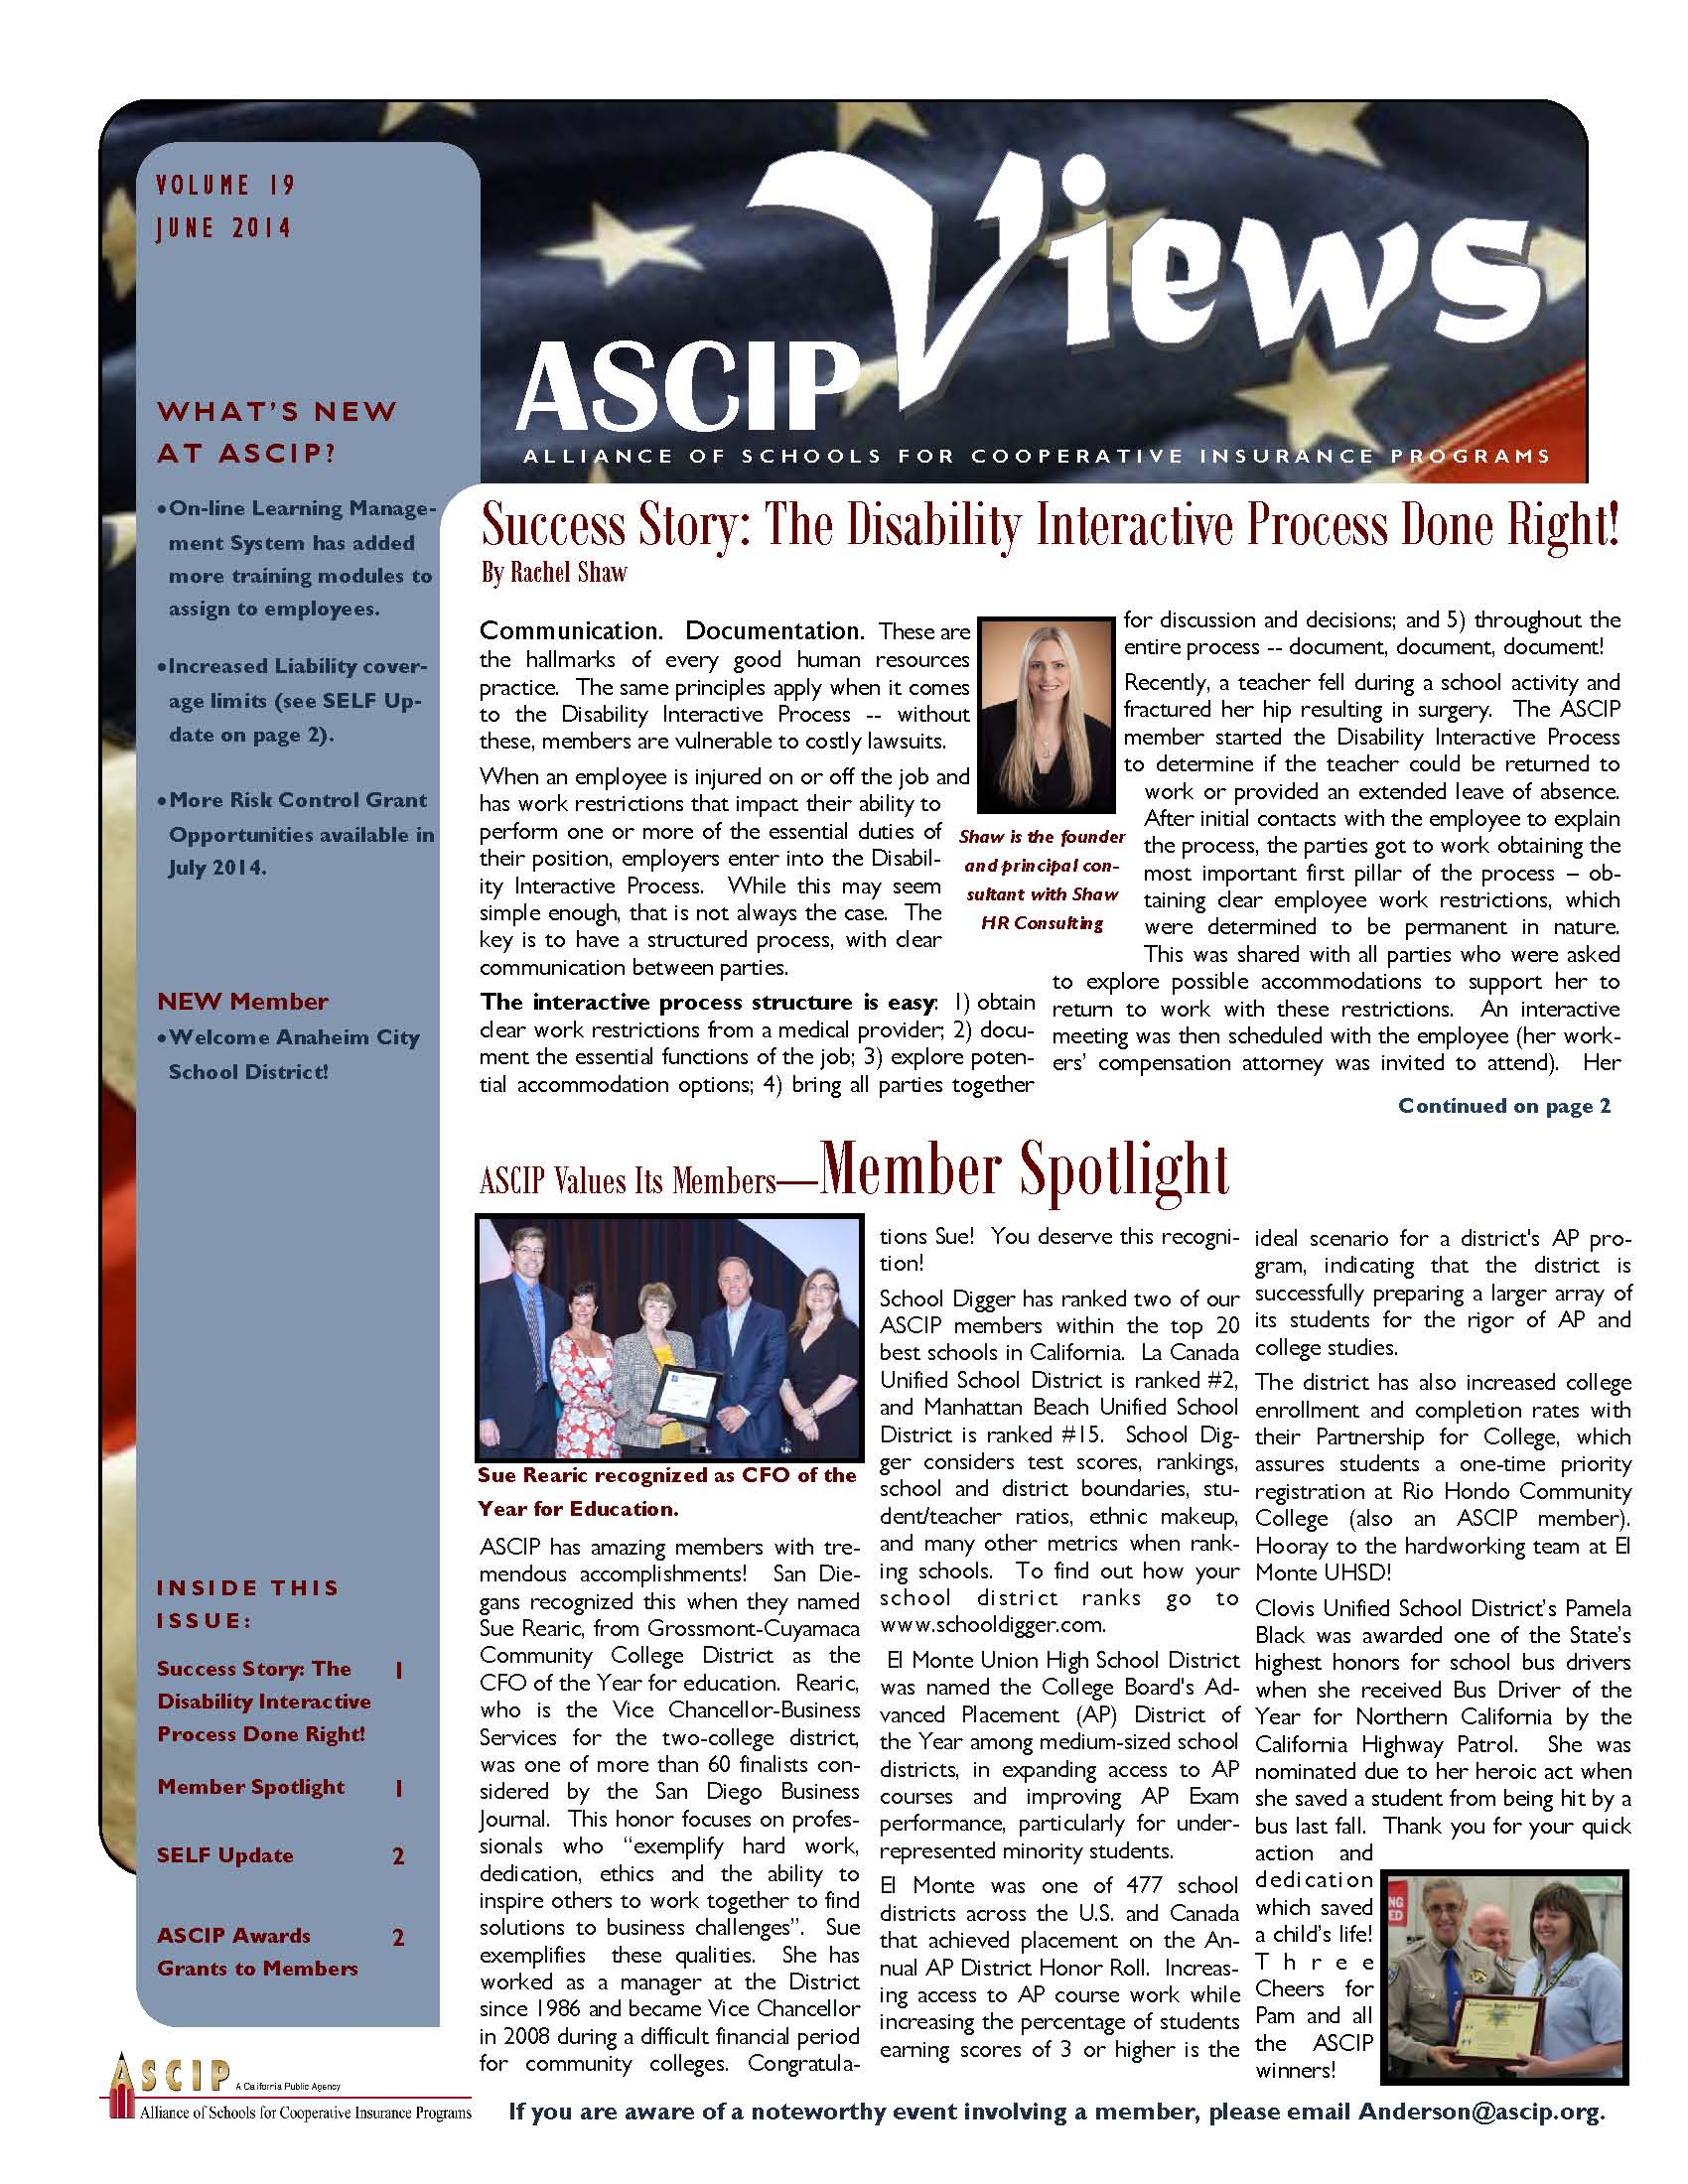 ASCIP Newsletter-June 2014 Image